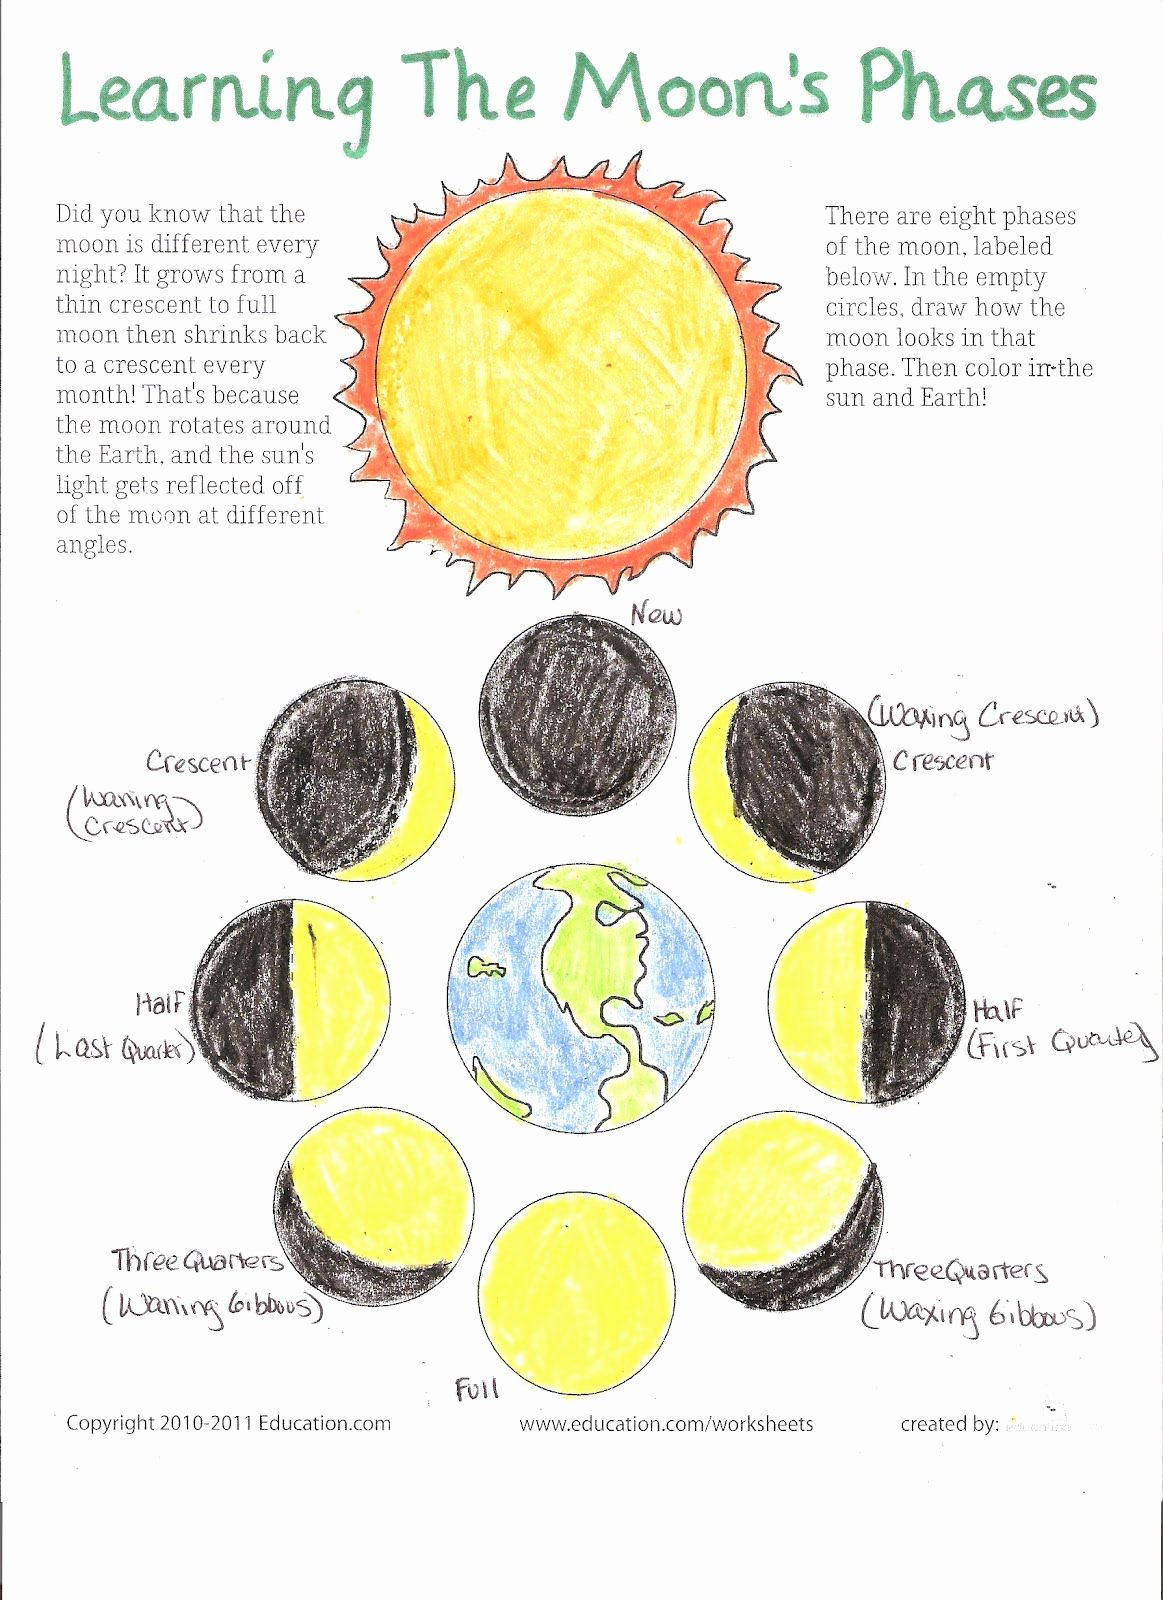 Moon Phases Worksheet Pdf Luxury Superval Blog Moon Phases Fun with the Kids